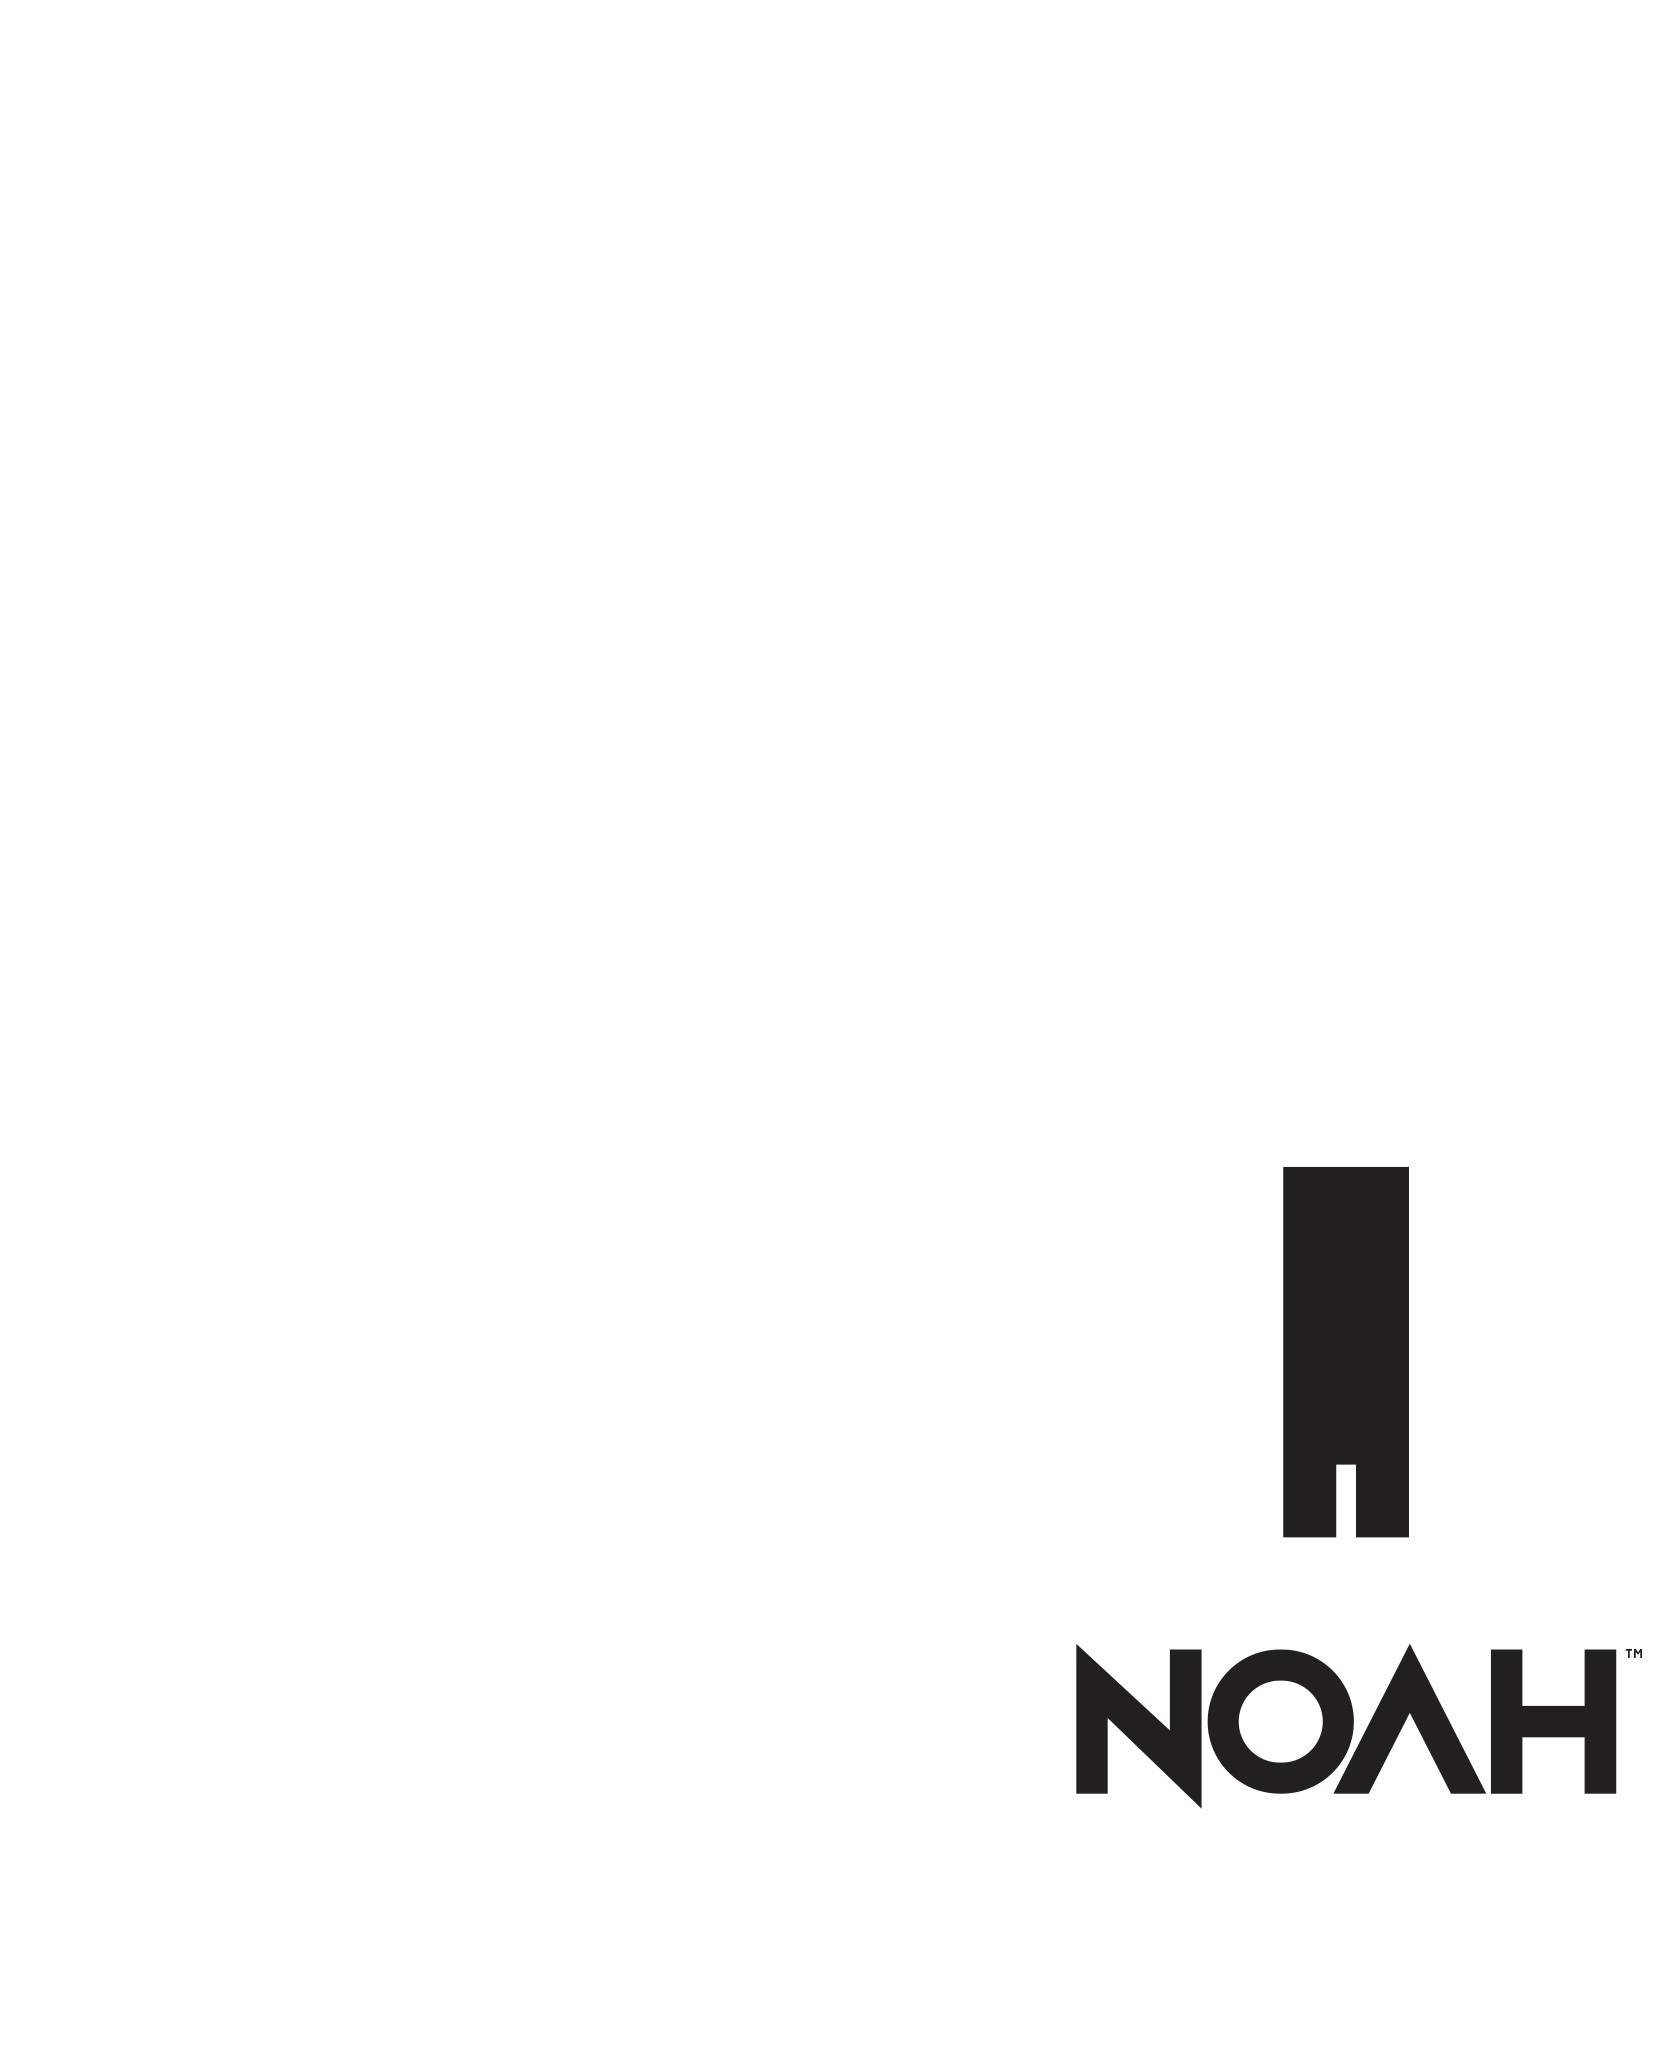 Download Noah Special Signed & Numbered Edition ebook